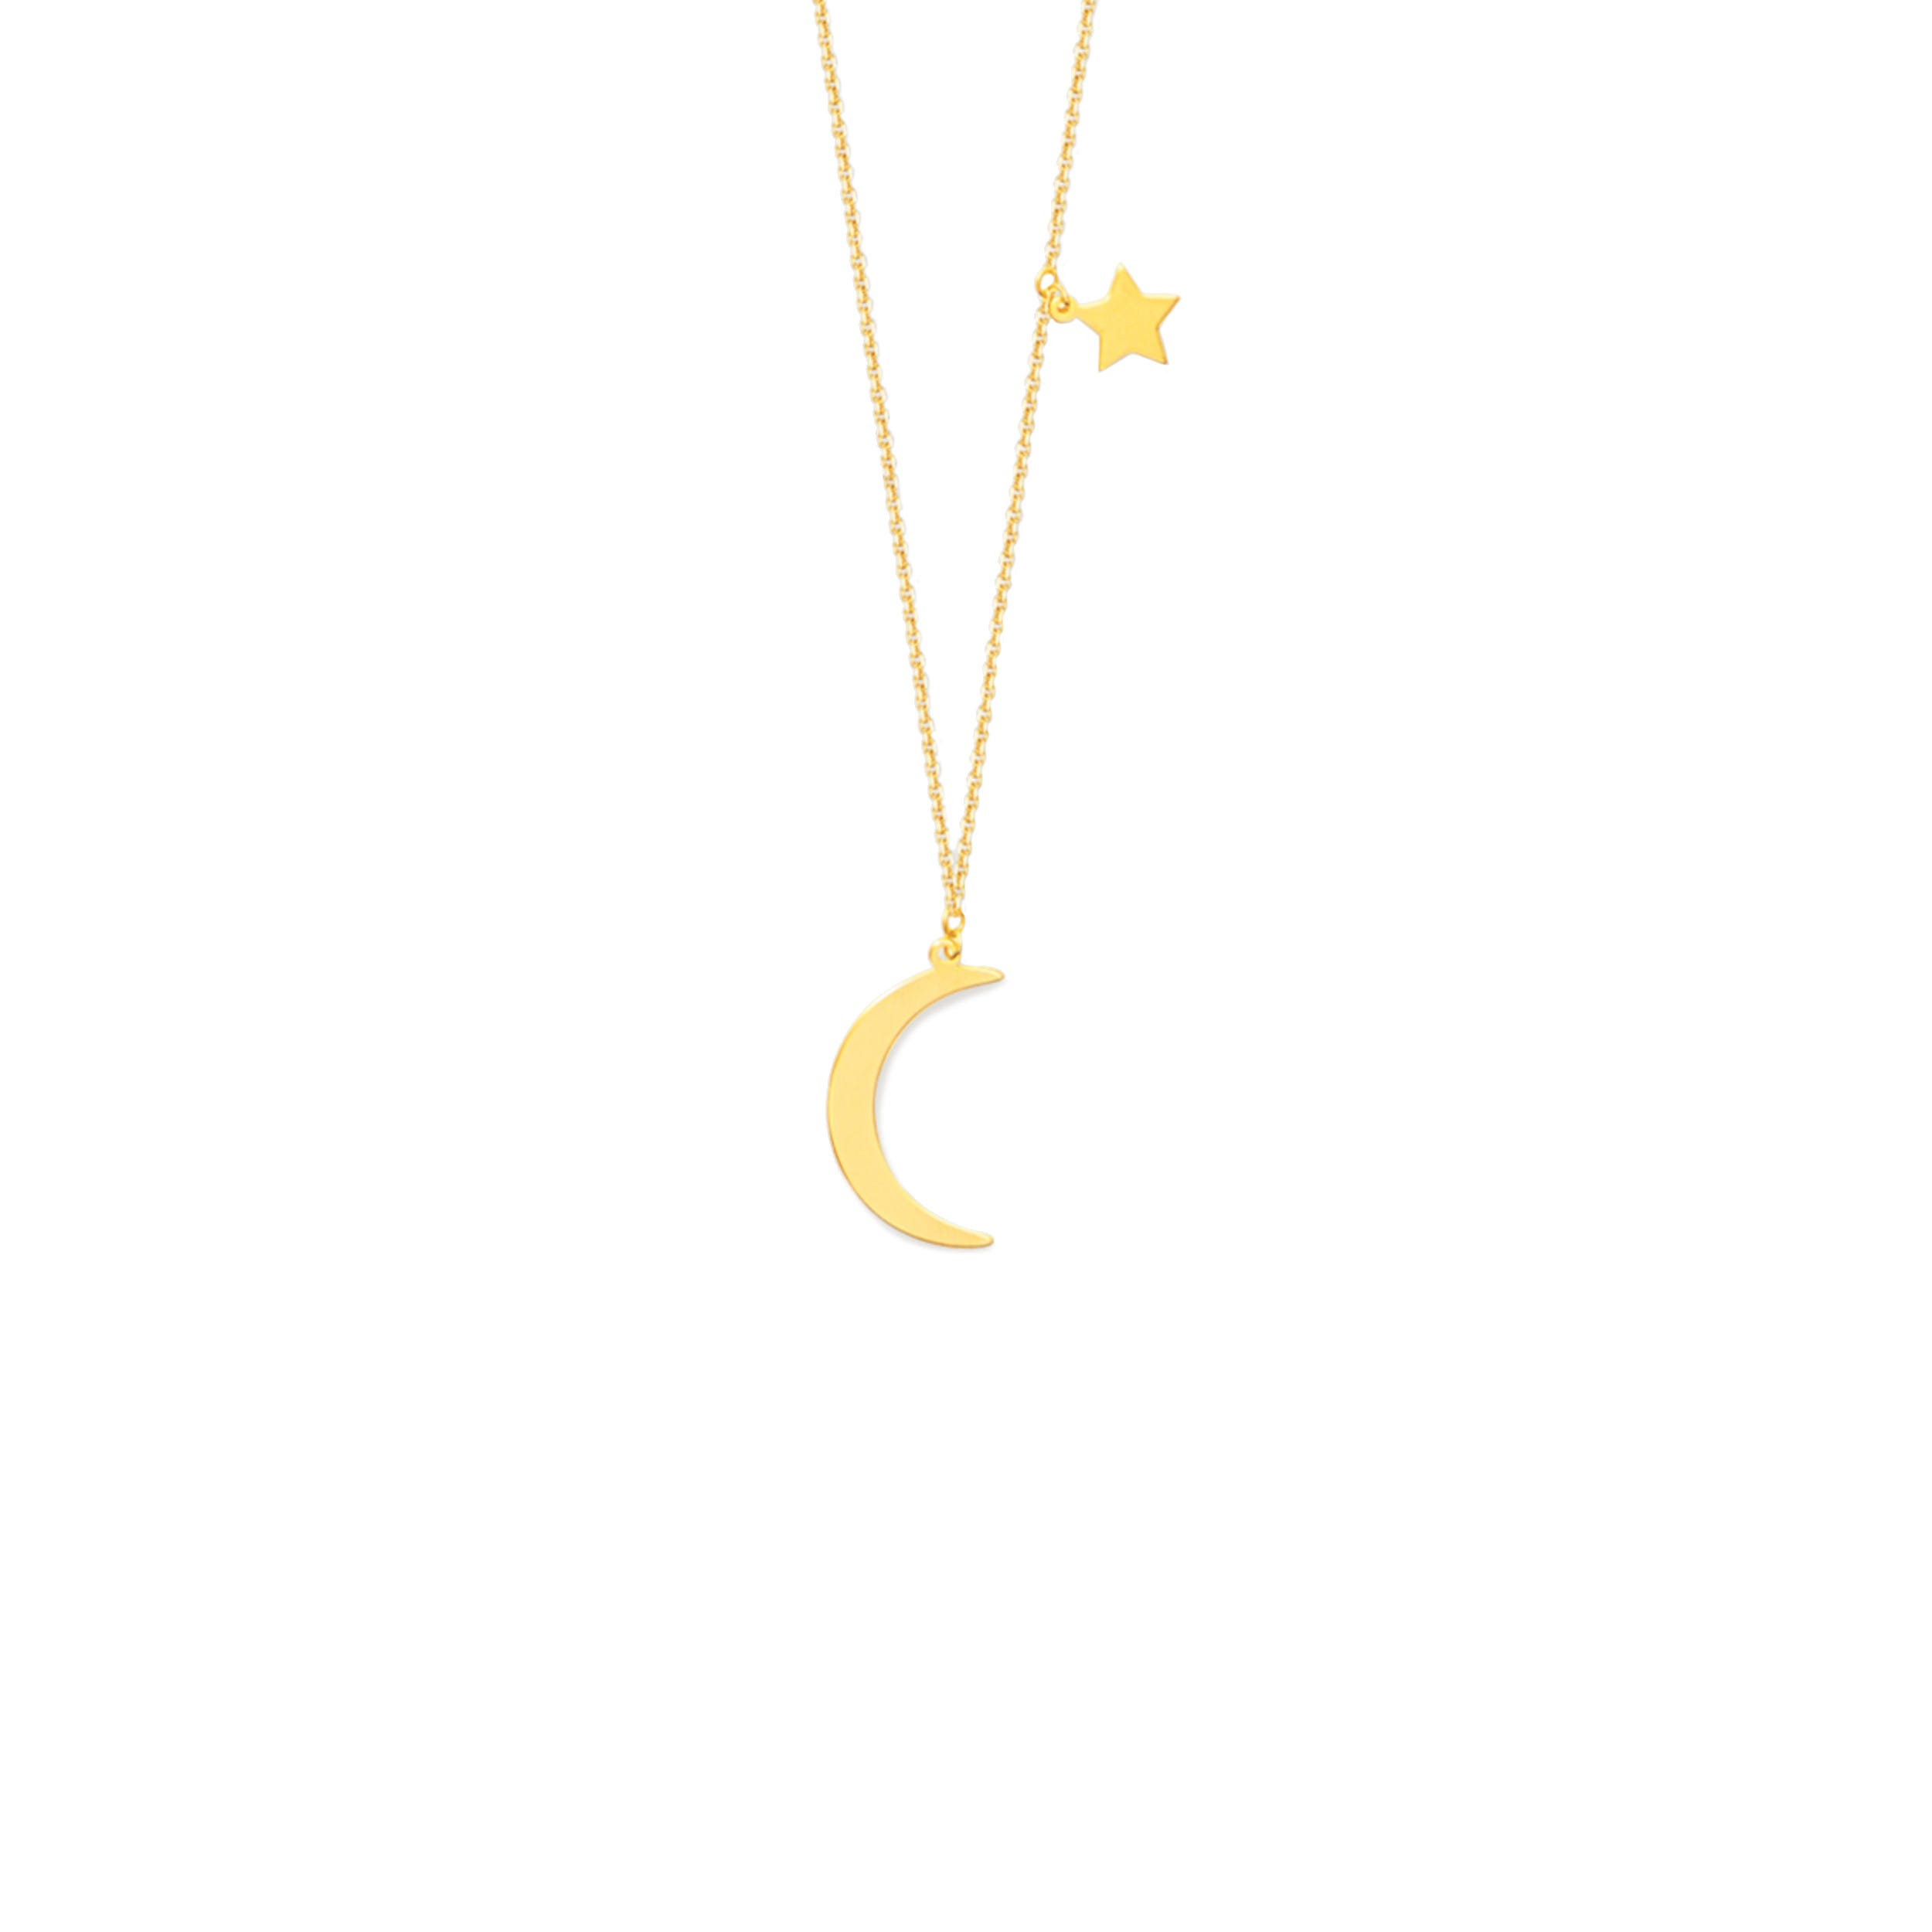 2ee350d2e8d7c1 Ladies Crescent Moon & Star Adjustable Fashion Necklace in 14k ...